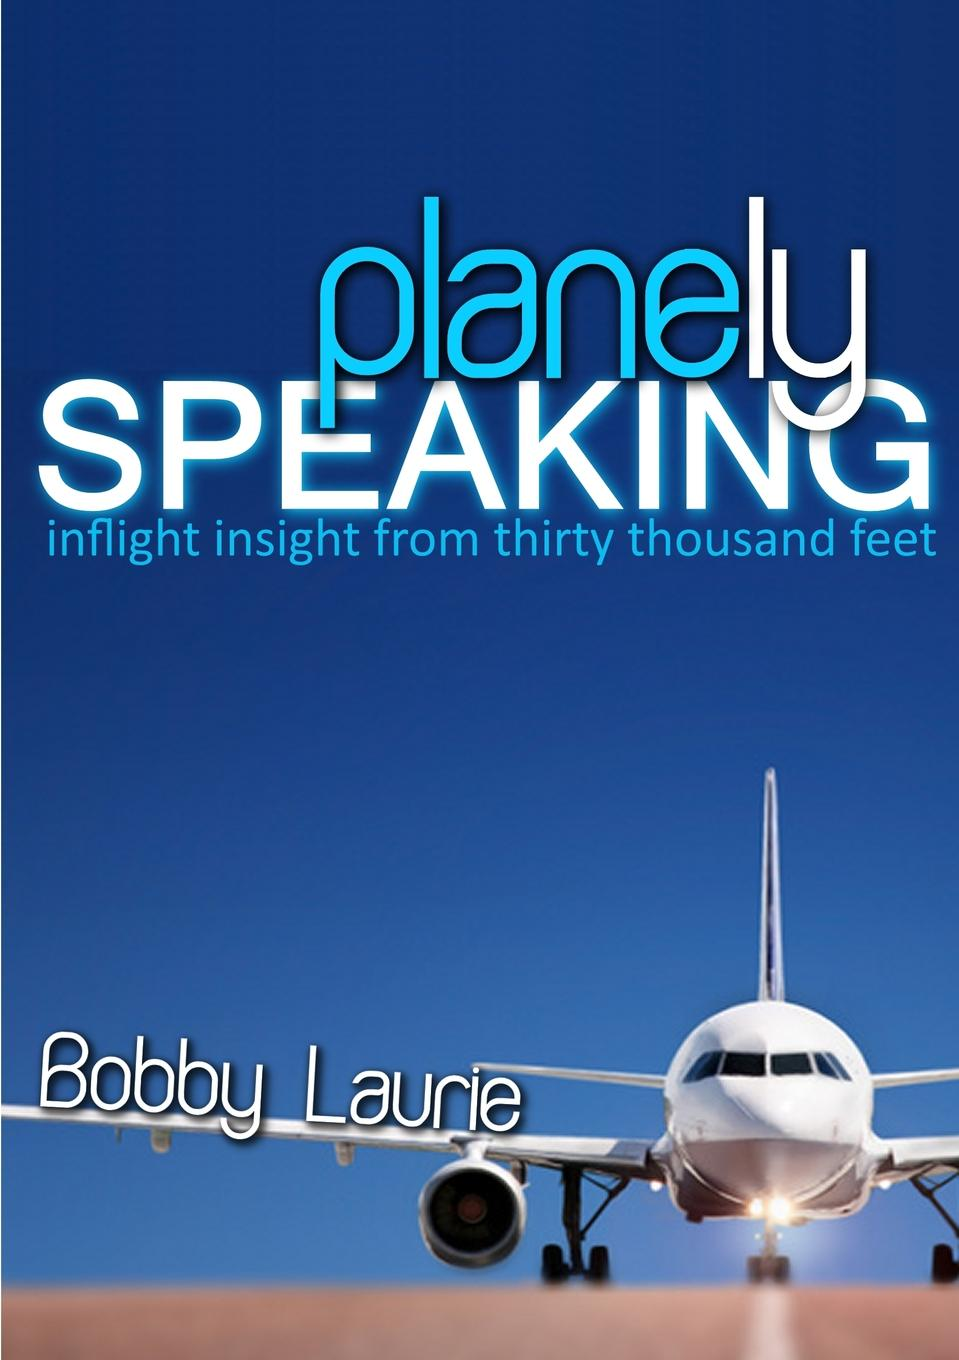 Bobby Laurie Planely Speaking. Inflight Insight from Thirty Thousand Feet